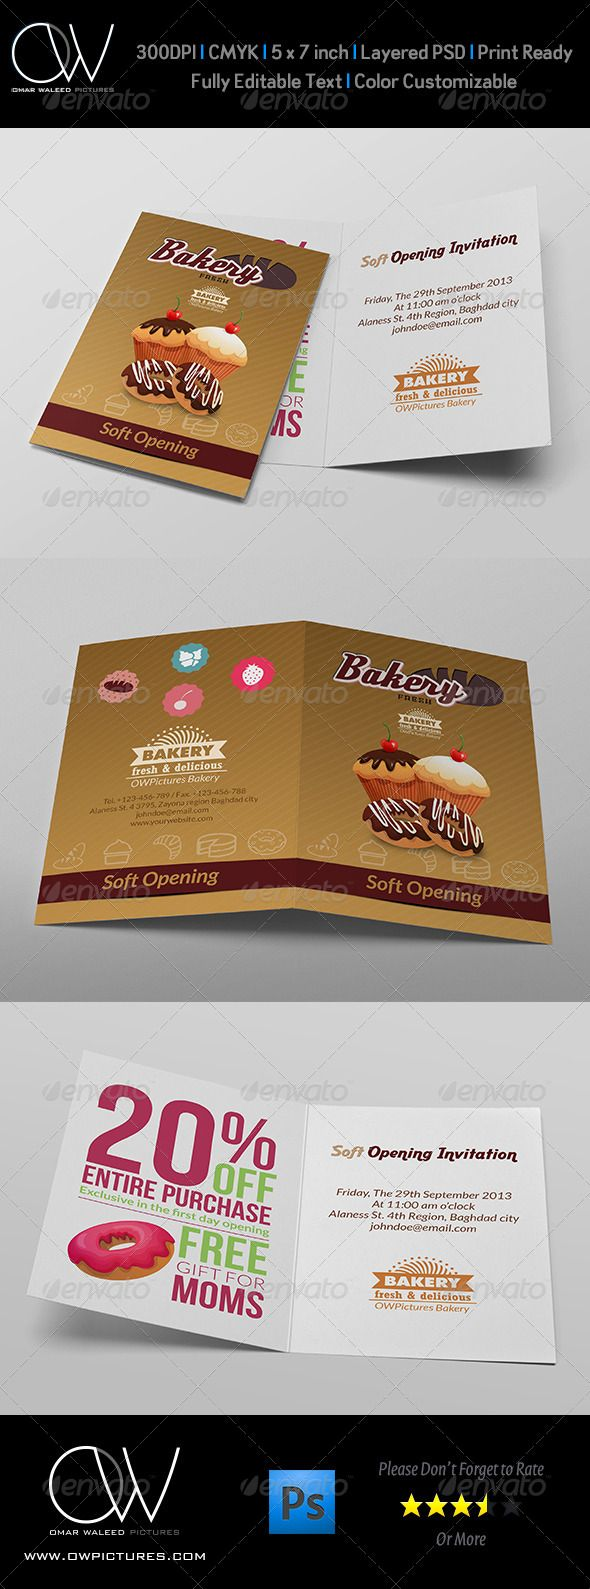 Bakery soft opening invitation card template card templates bakery soft opening invitation card template stopboris Images